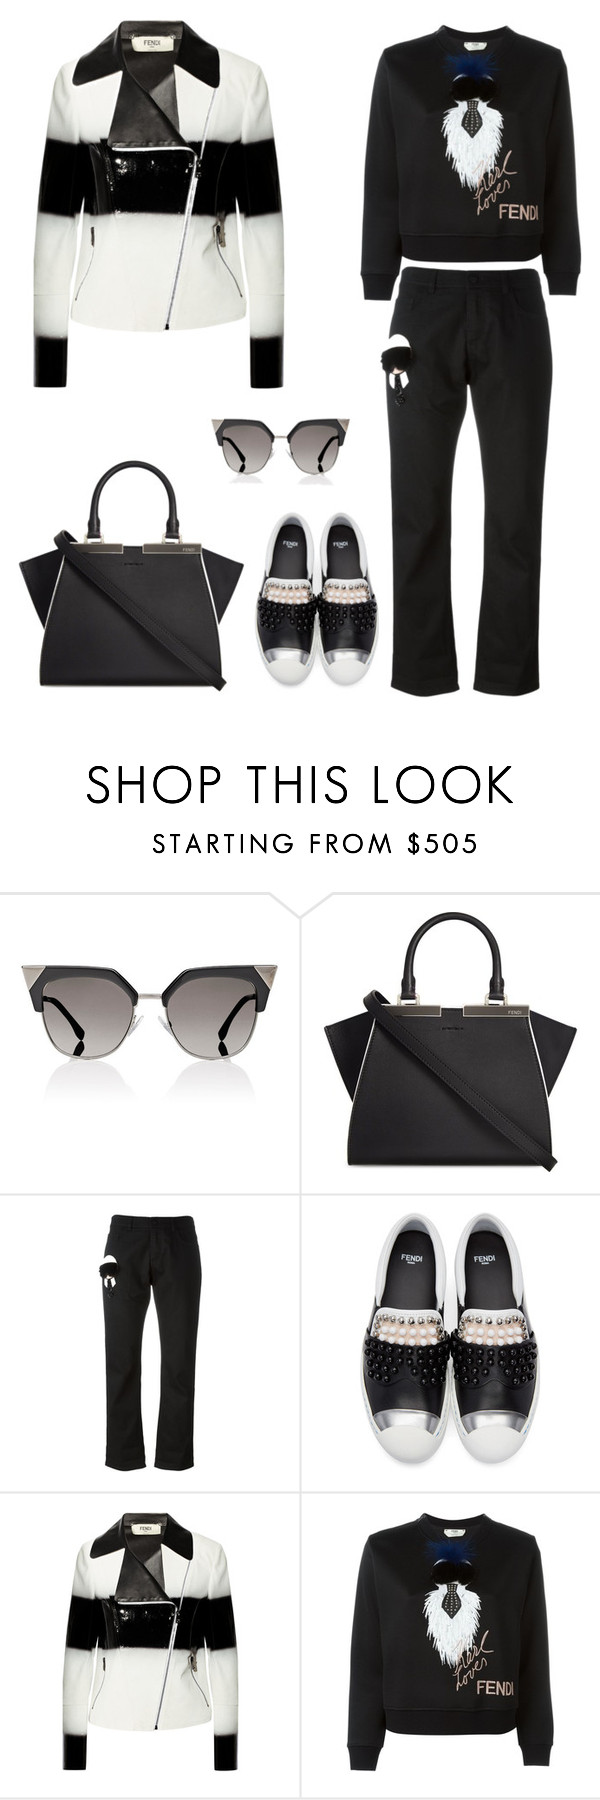 """Fendi"" by principessalove ❤ liked on Polyvore featuring Fendi"